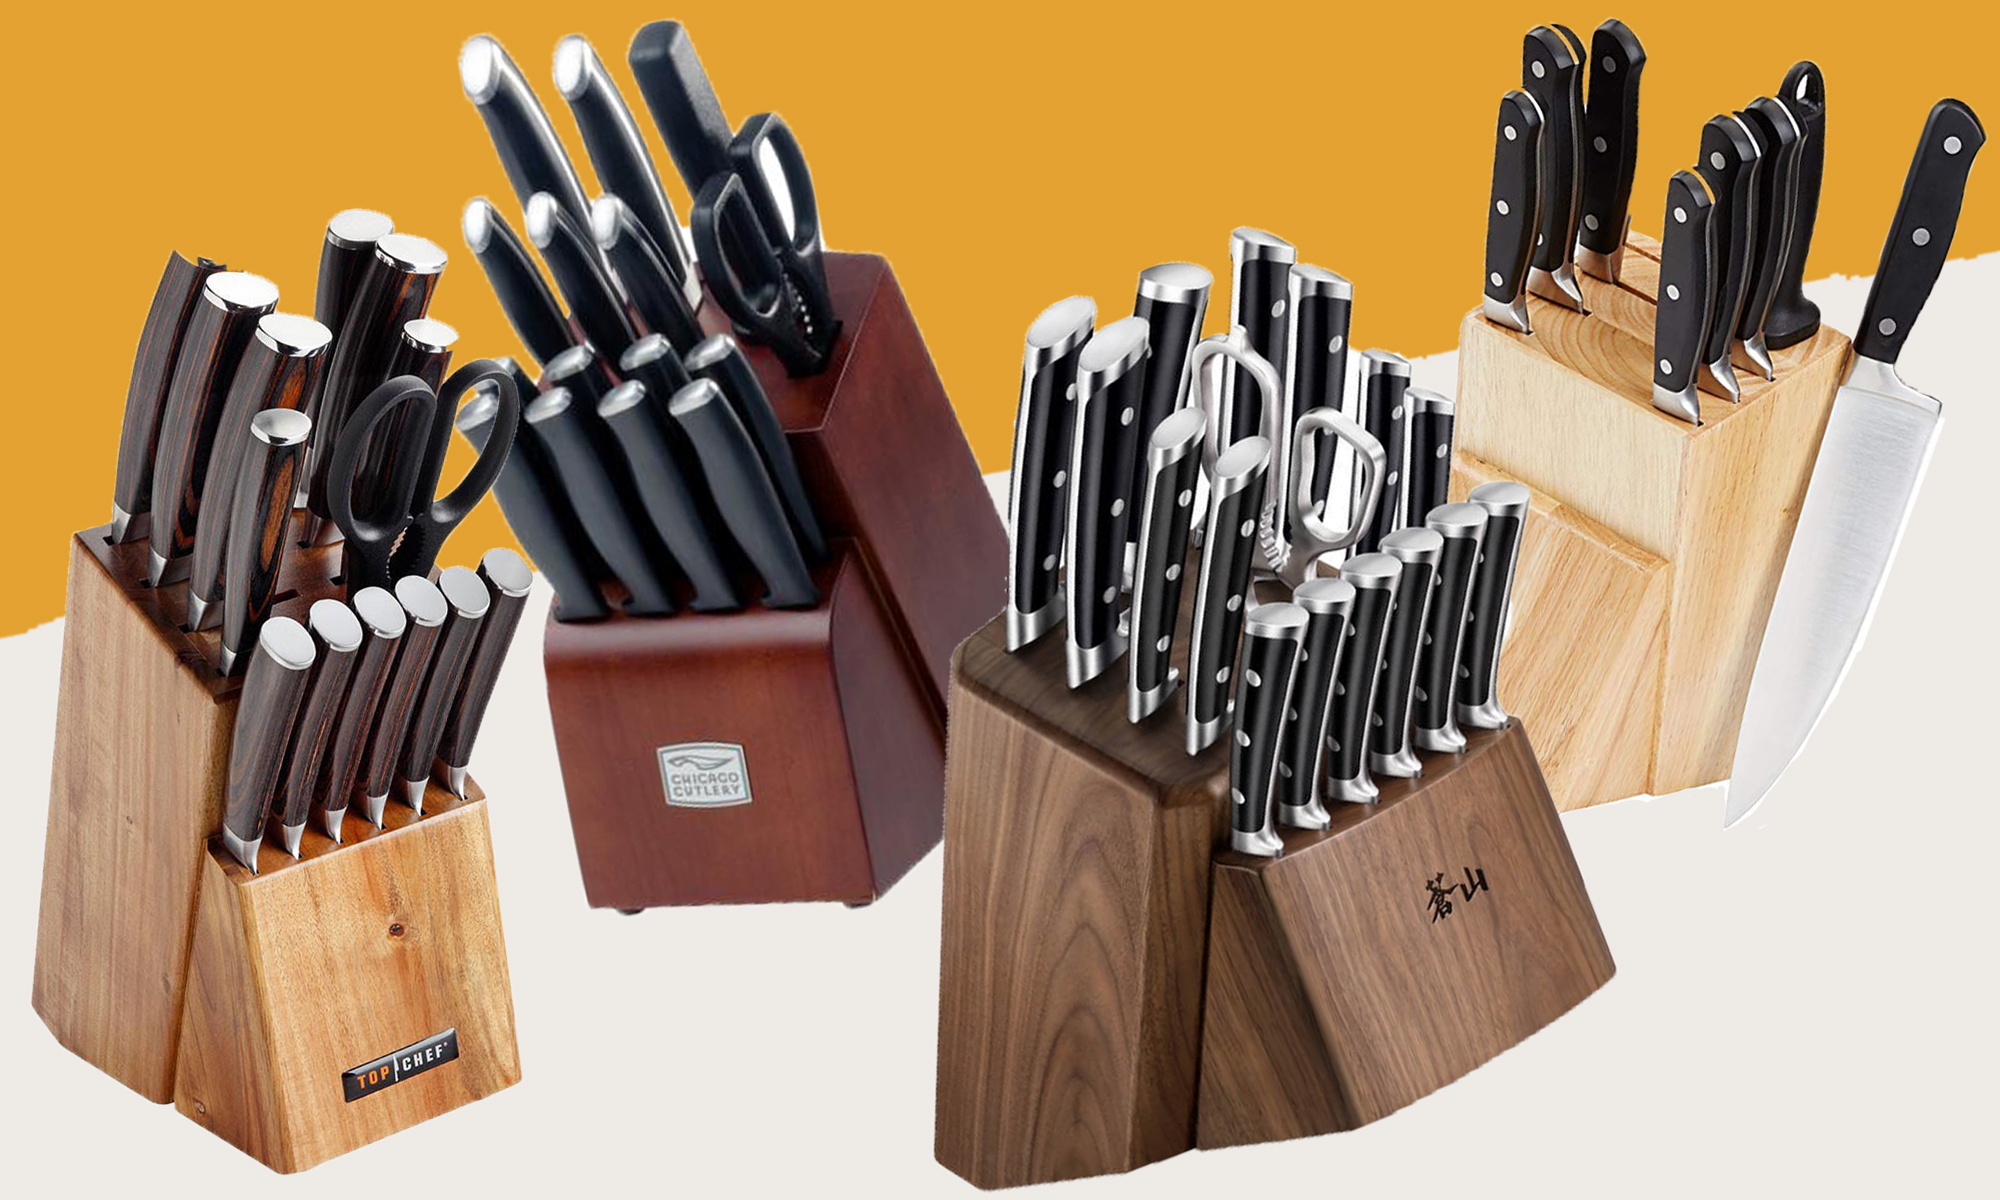 4 knife block sets on basic graphic background